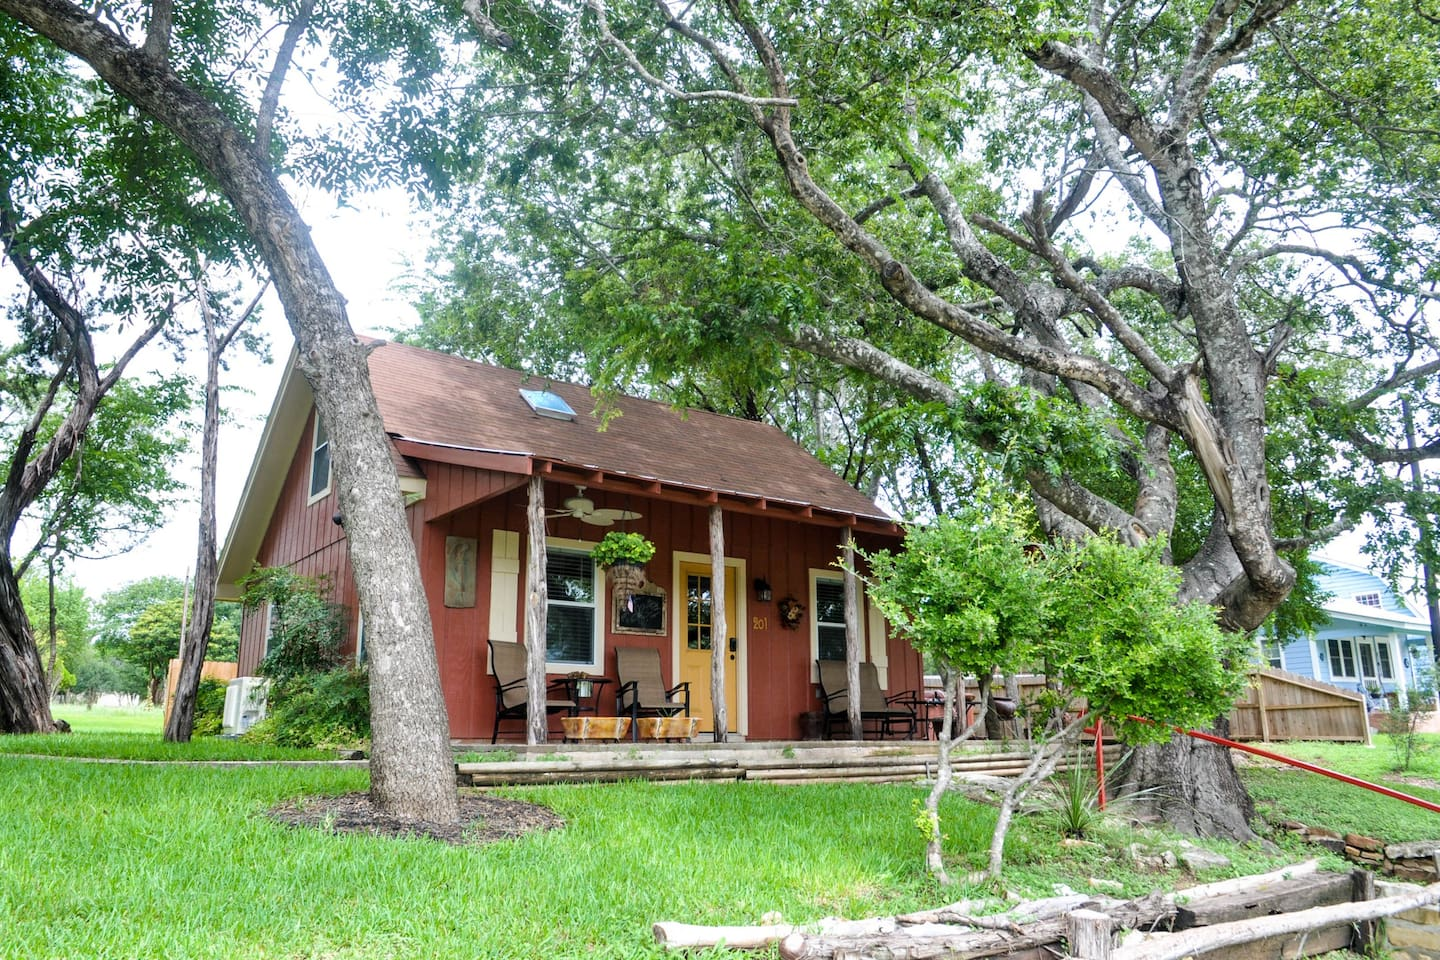 com cottages cottage photo tx of wimberley calissto delightful x